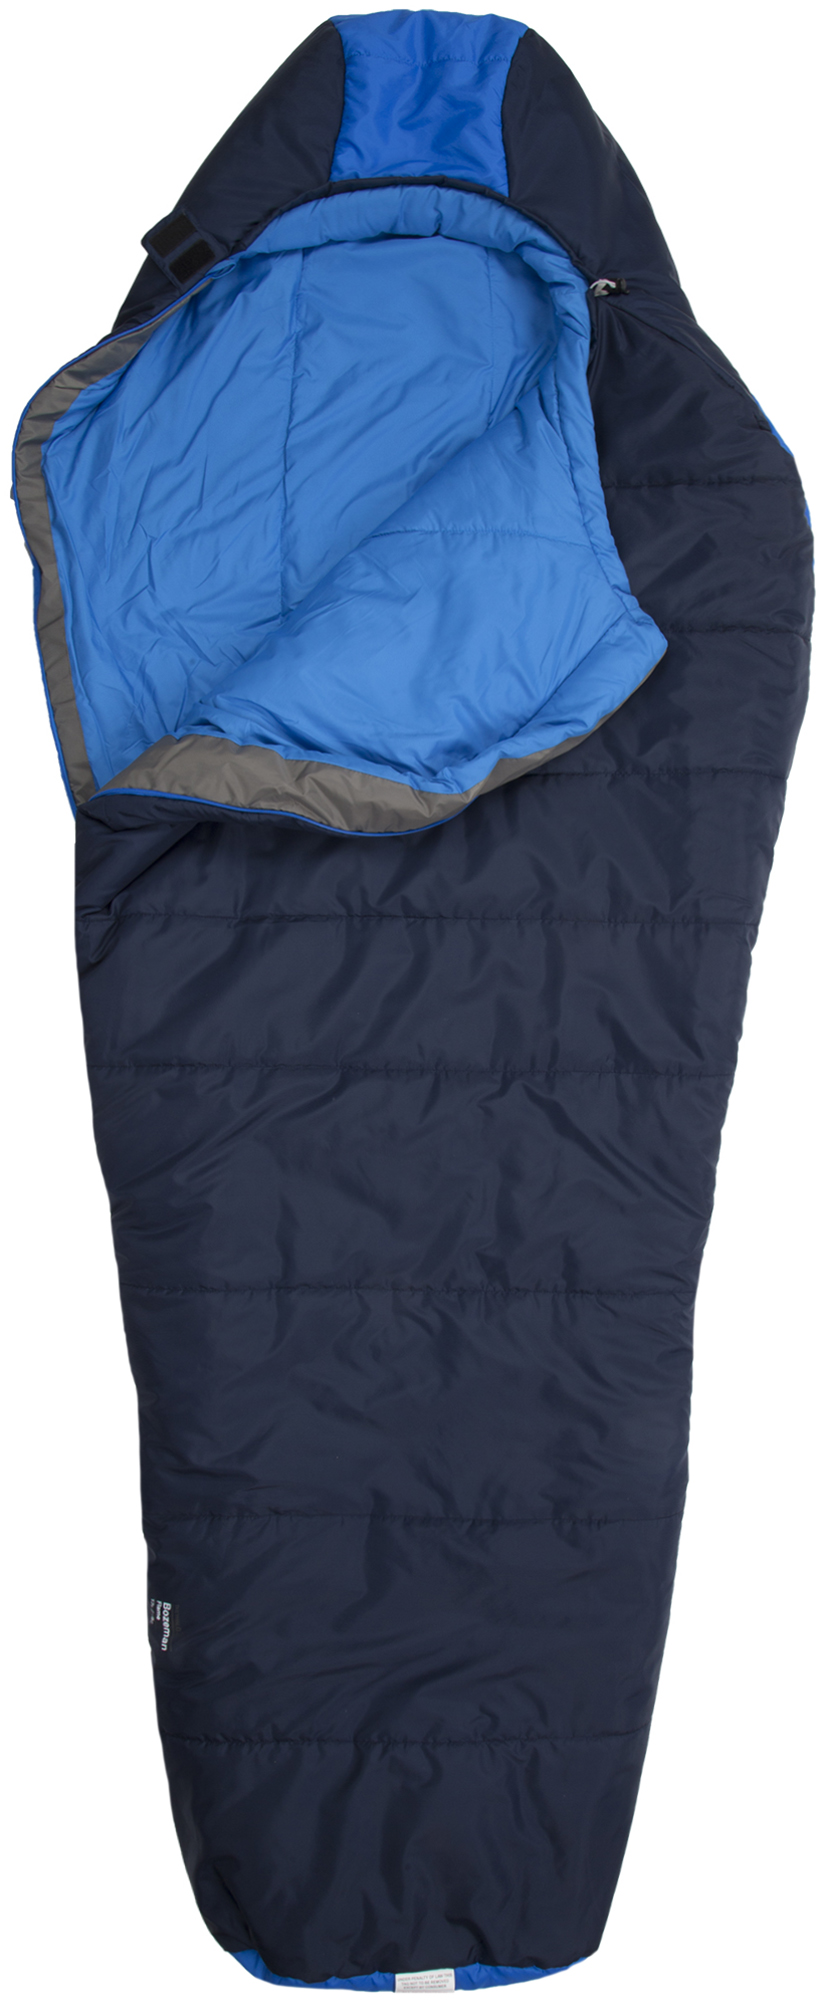 Mountain Hardwear Mountain Hardwear Bozeman Flame, размер 198